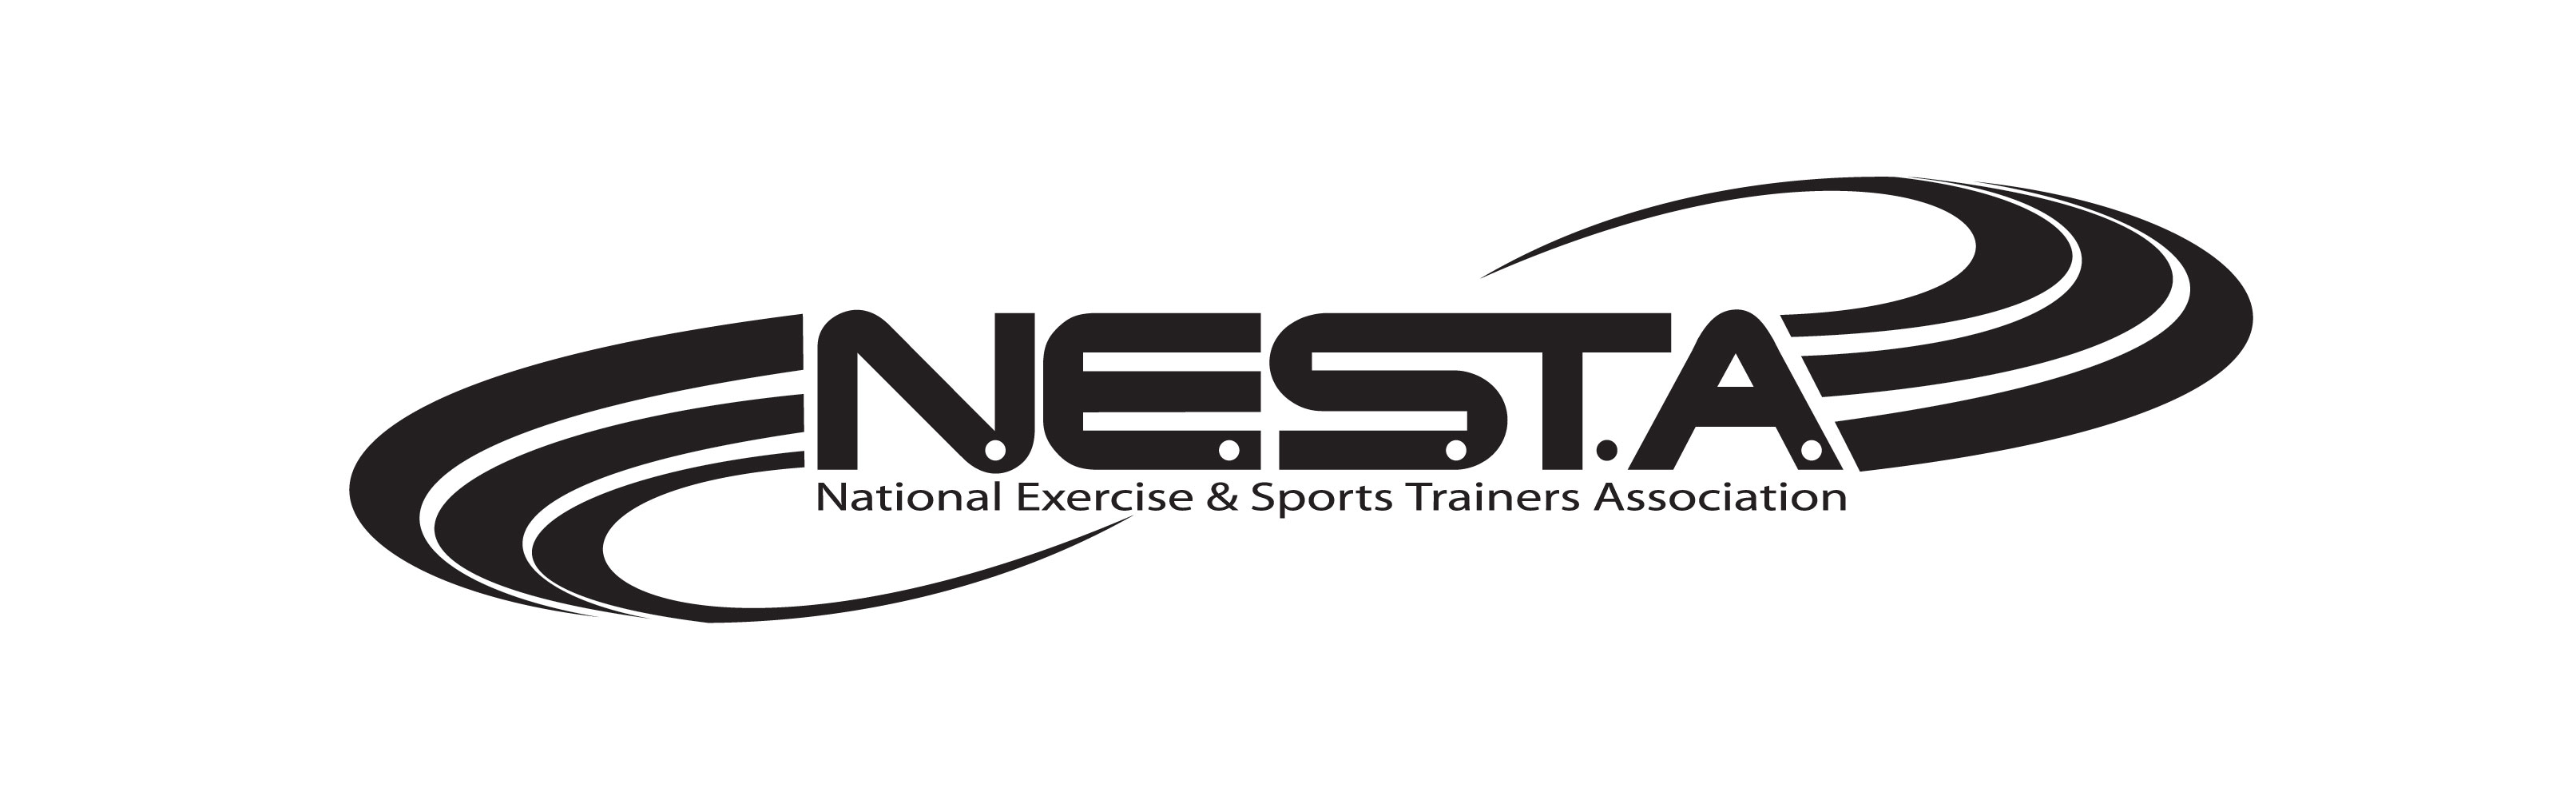 Nesta expands local personal training certification workshops to become a personal trainer nesta fitness schoolfitness education and certification xflitez Image collections